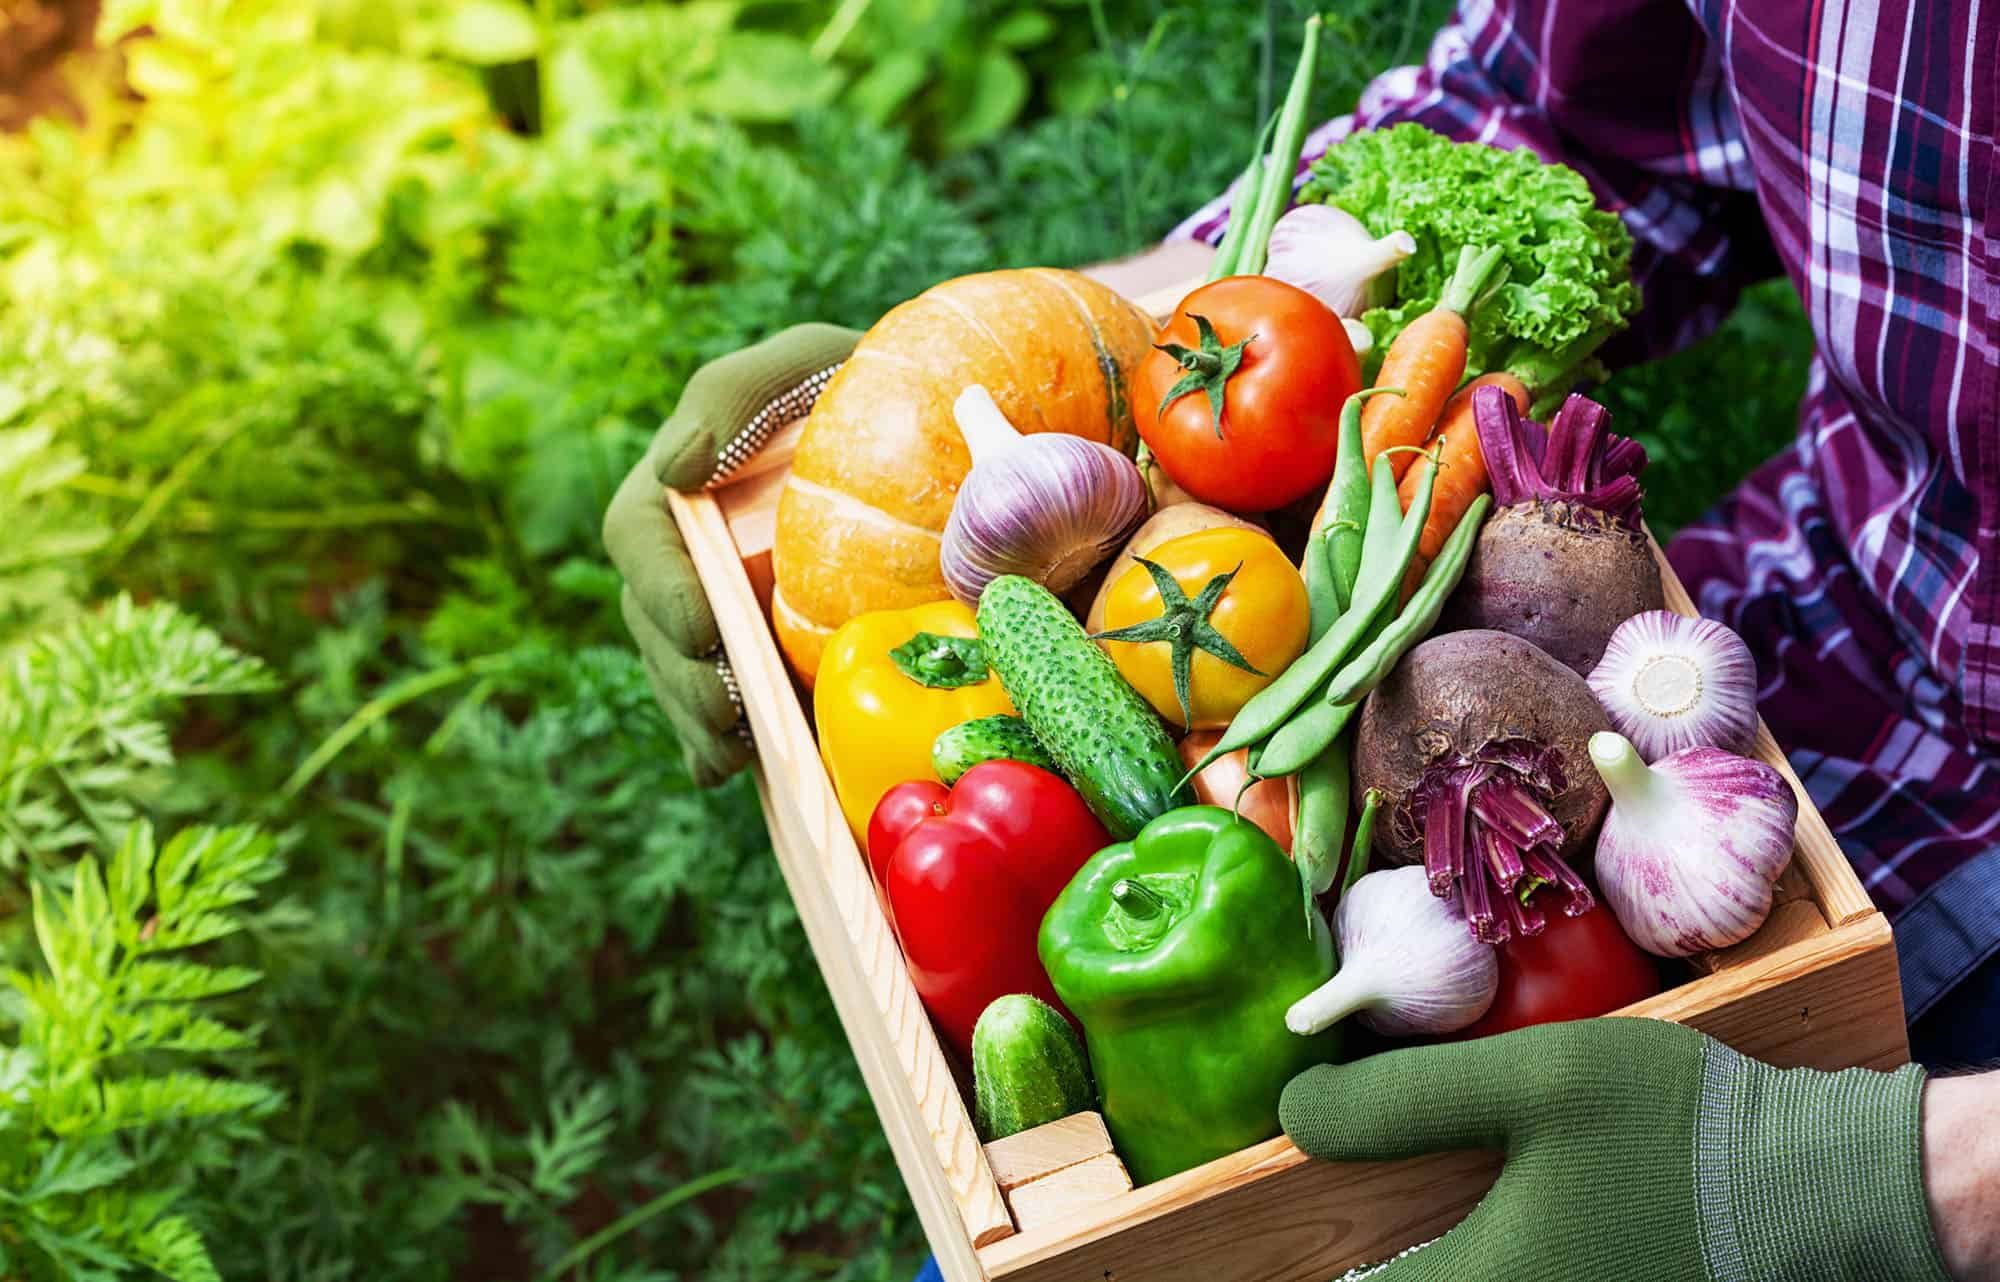 UAMS purchases 20% of its food from local sources, including fruits, vegetables, poultry, rice, dairy, bread and coffee.